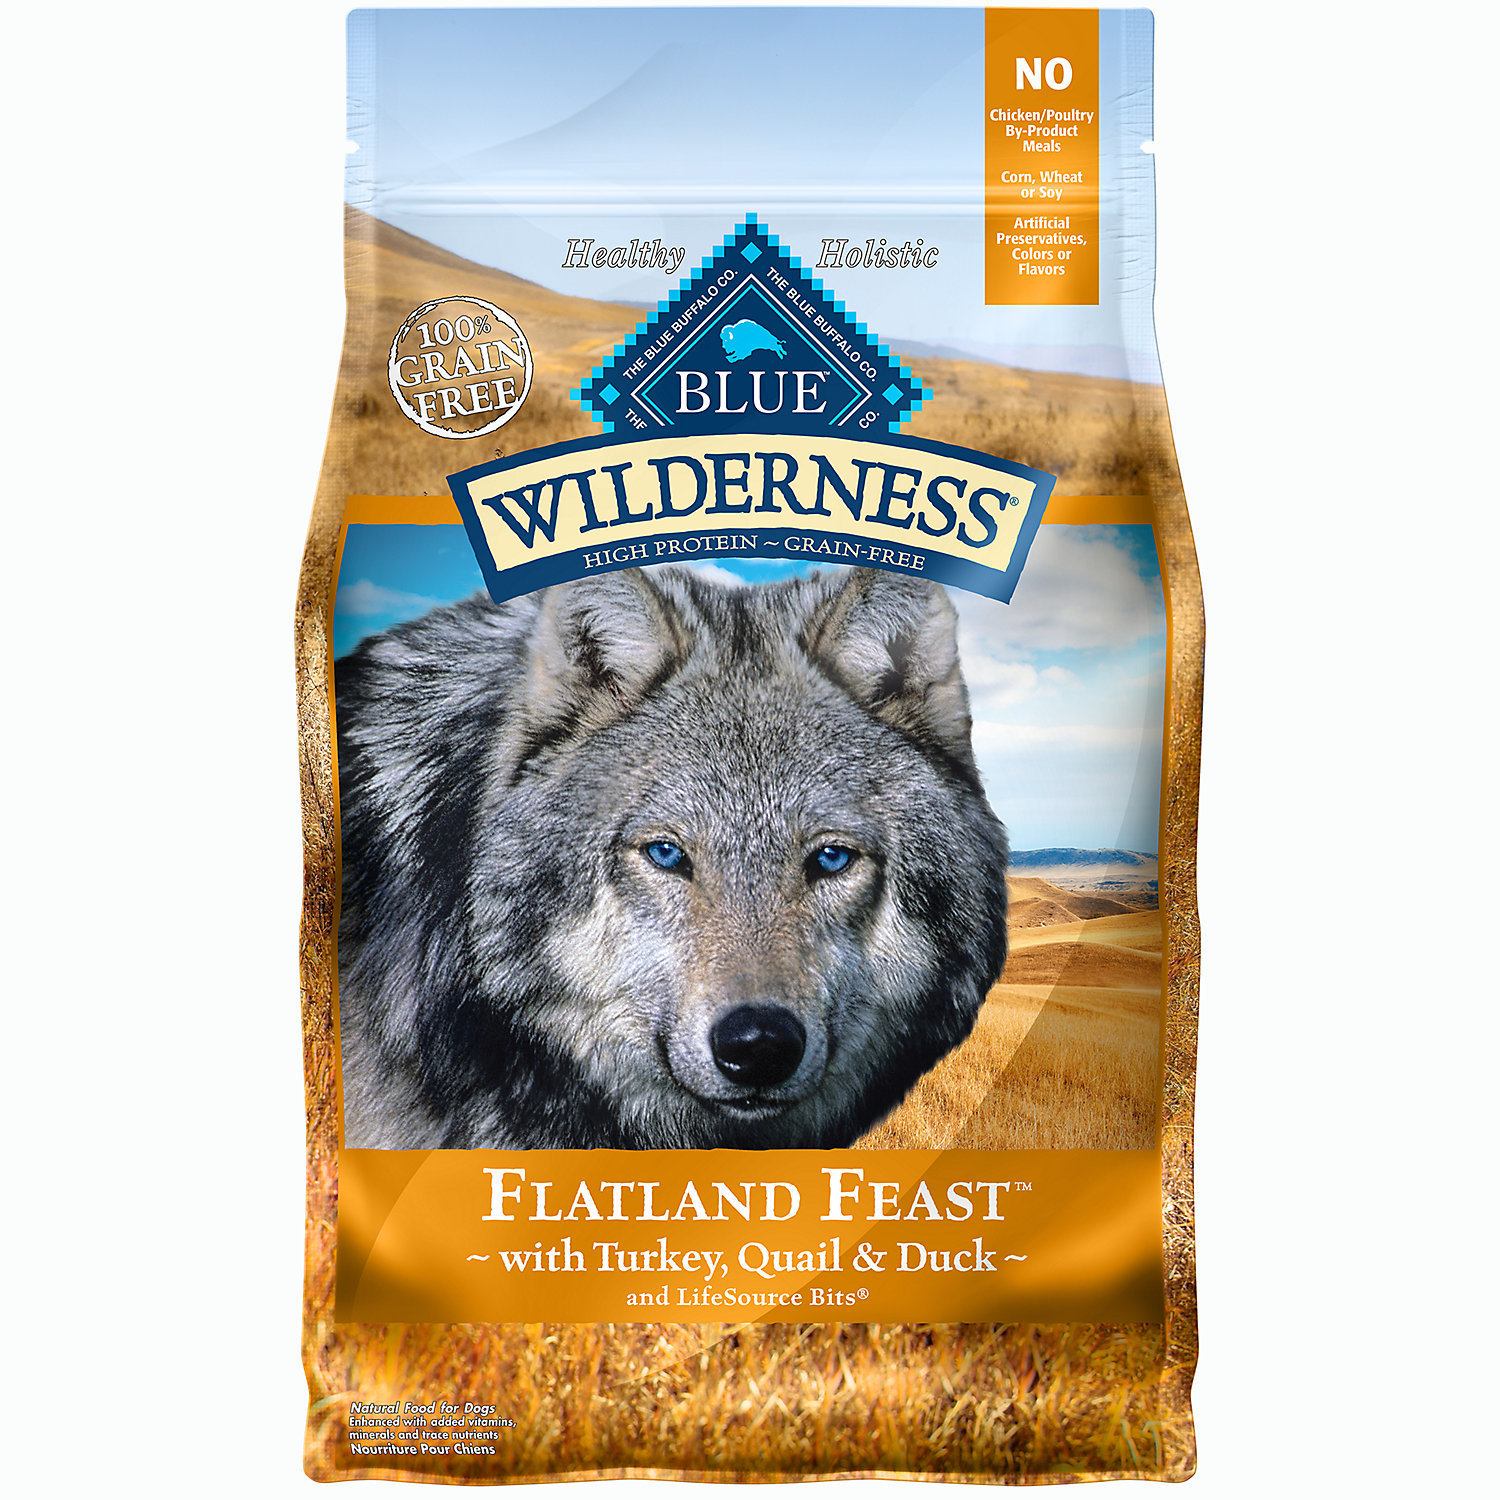 Blue Buffalo Wilderness Regional Blends Flatland Feast Turkey, Quail and Duck 4lbs (3/20)